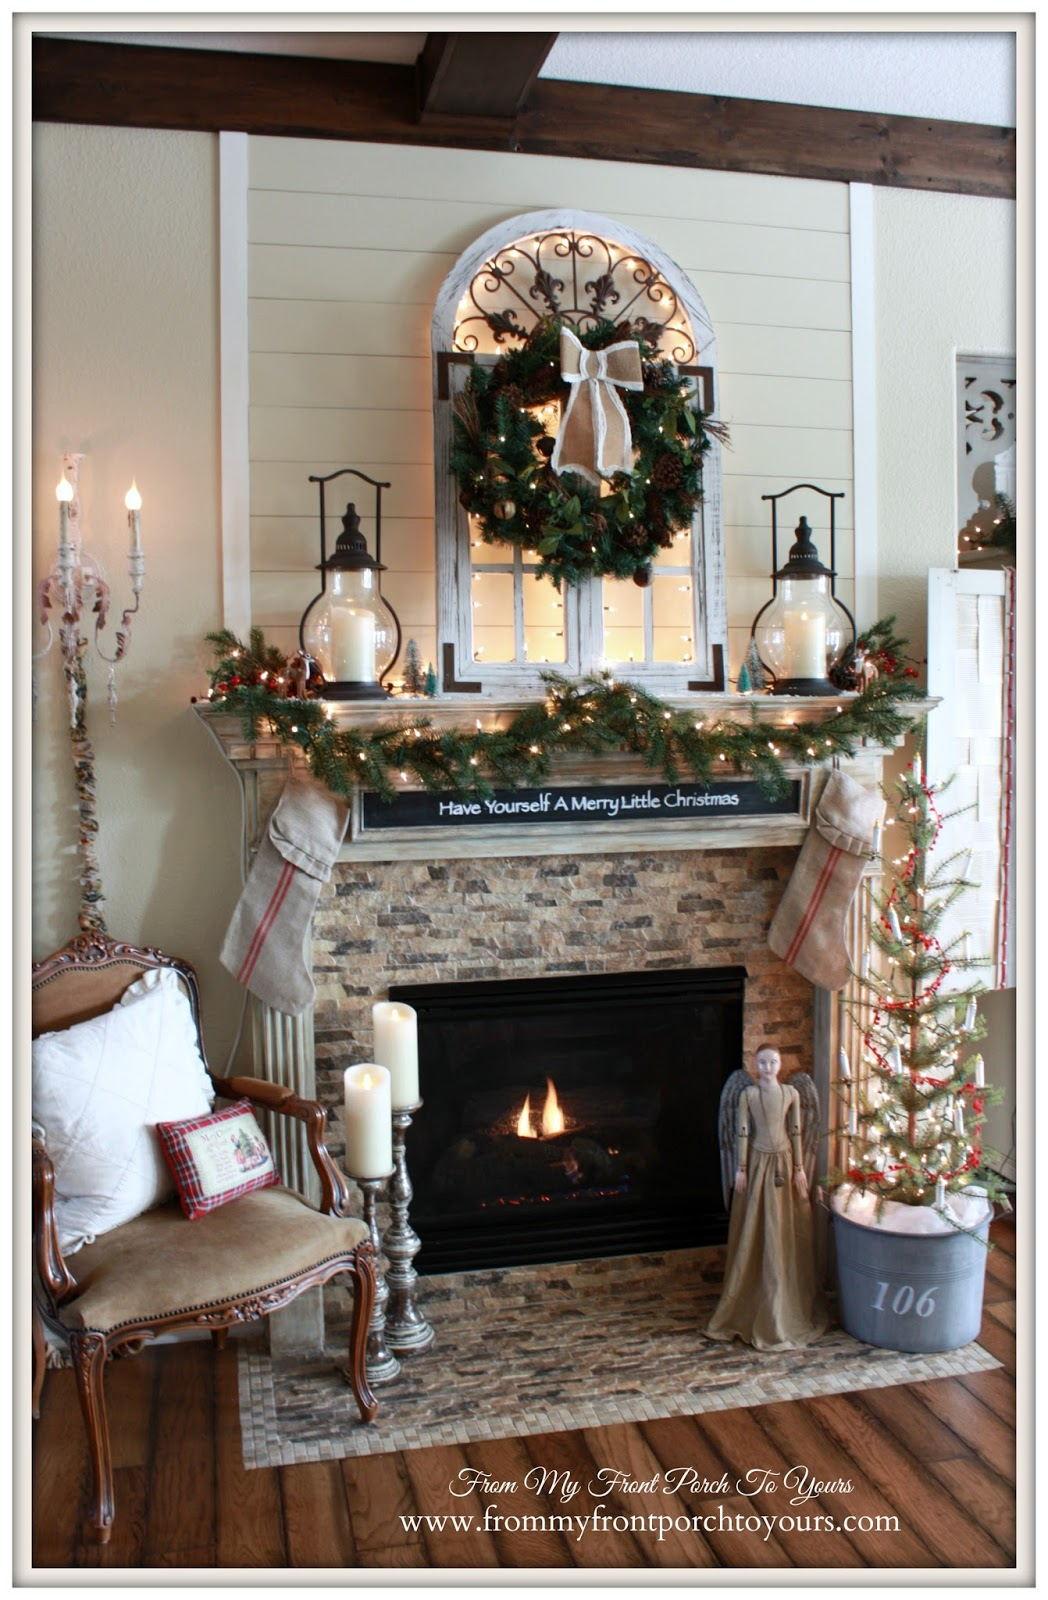 Farmhouse Rustic Fireplace Mantel Decor From My Front Porch To Yours Cozy Farmhouse Christmas